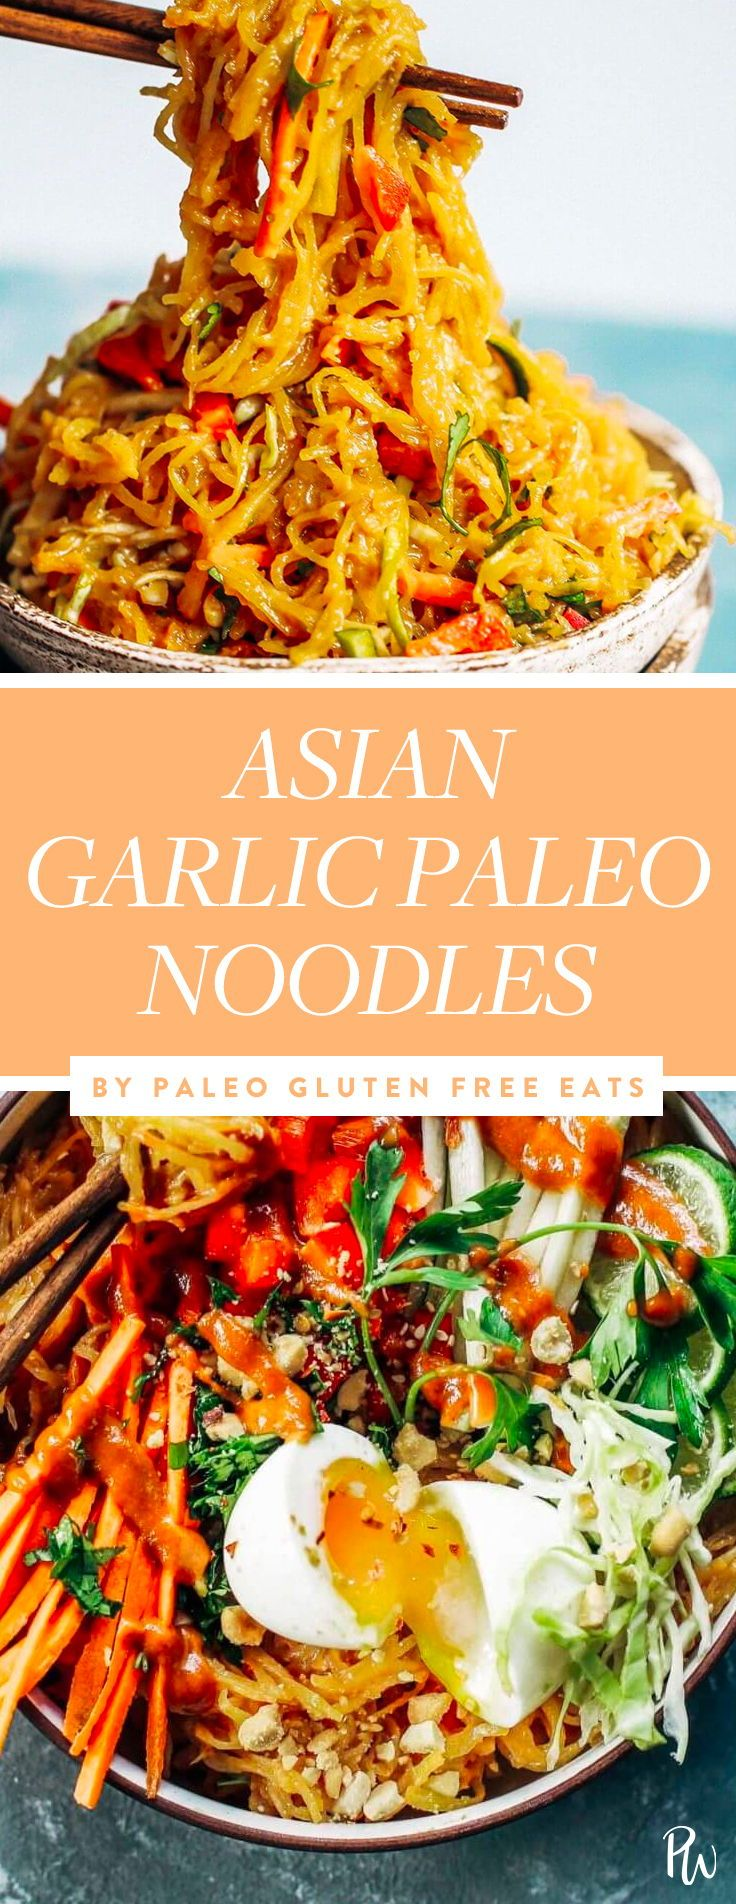 20 Chinese Recipes That Are on the Whole30 Diet Whole 30